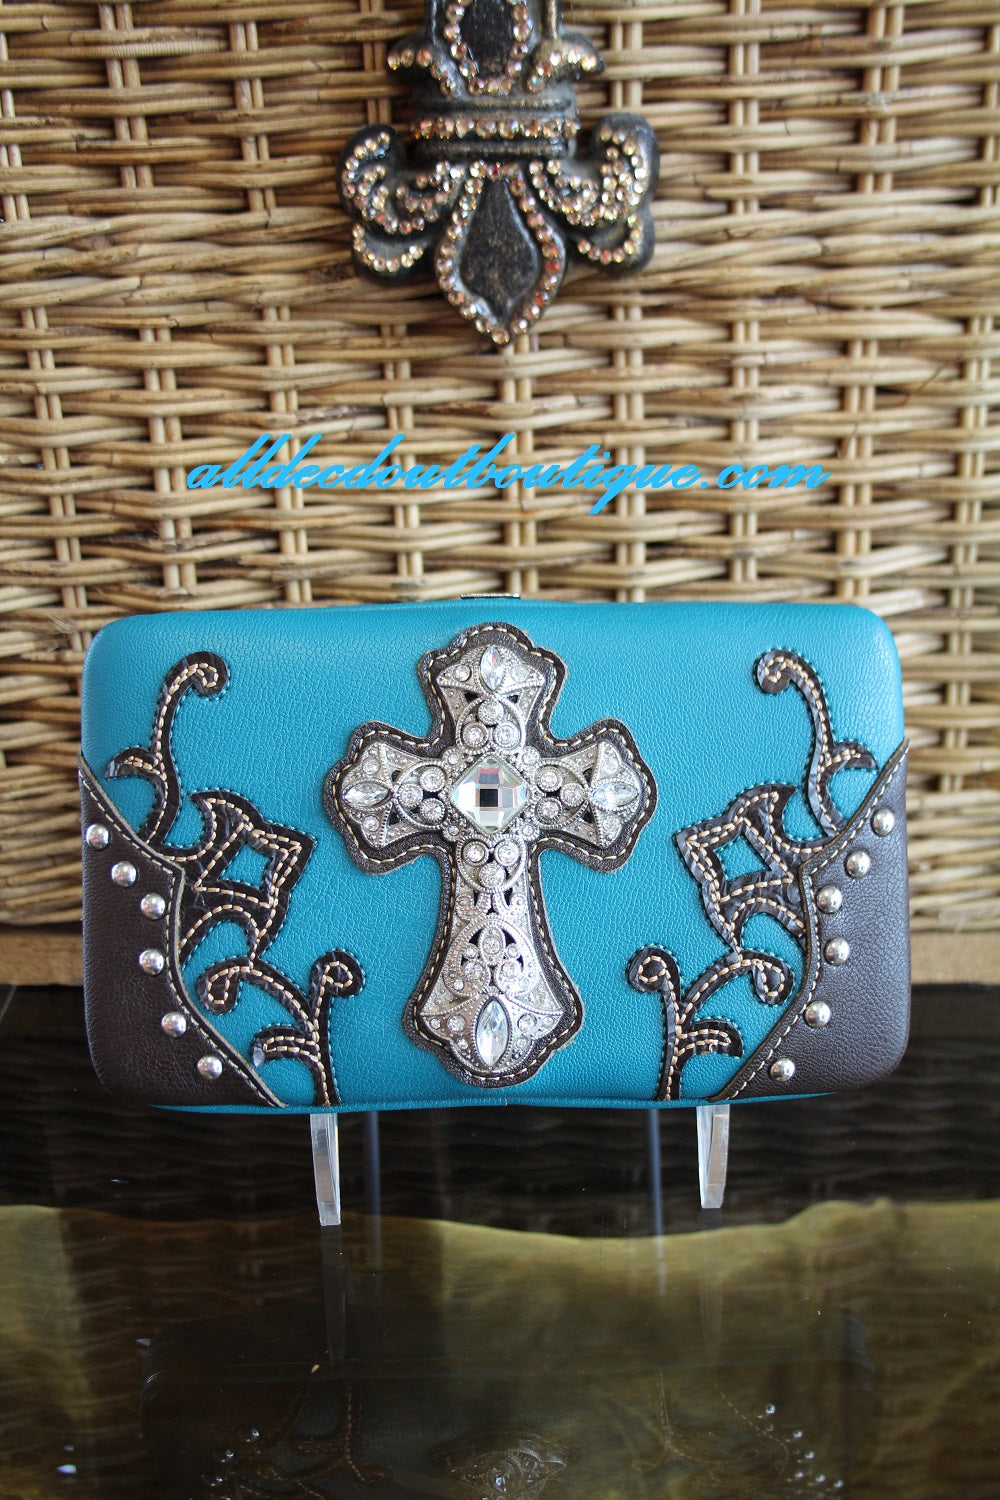 ADO | Blue Clutch Wallet with Embellished Cross - All Decd Out